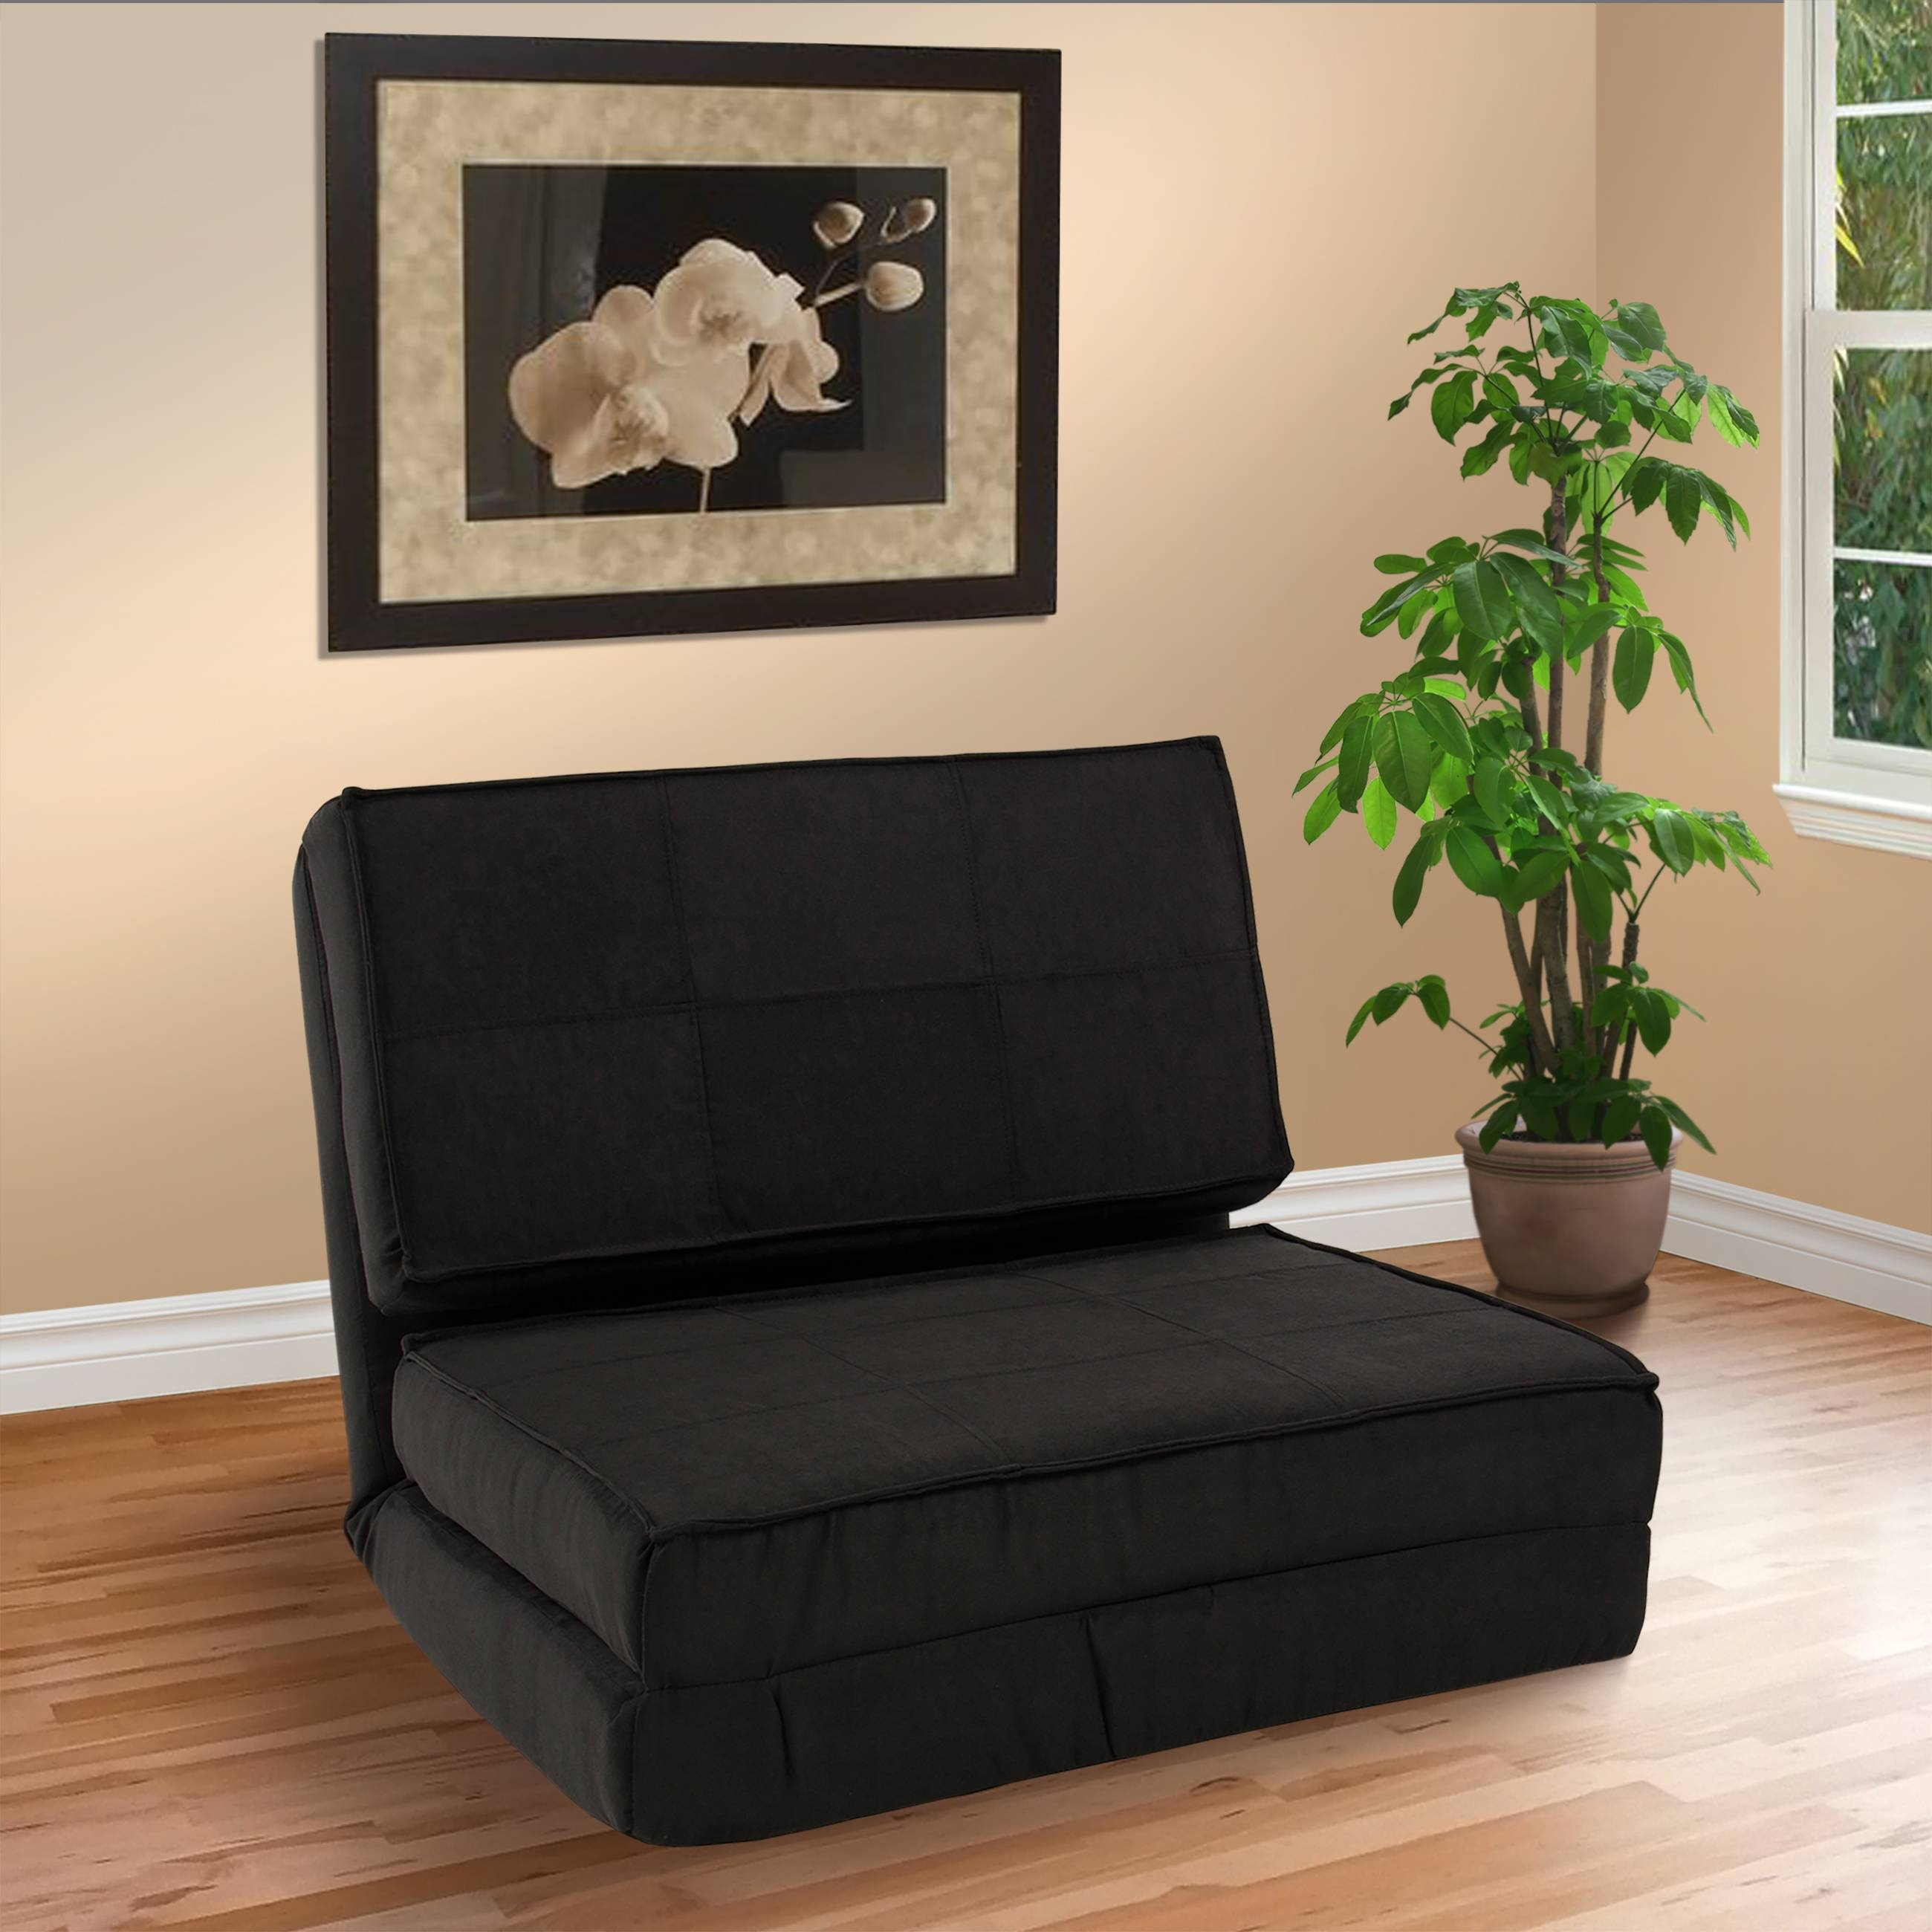 Fold Down Chair Flip Out Lounger Convertible Sleeper Bed Couch with regard to Twin Sofa Chairs (Image 4 of 30)